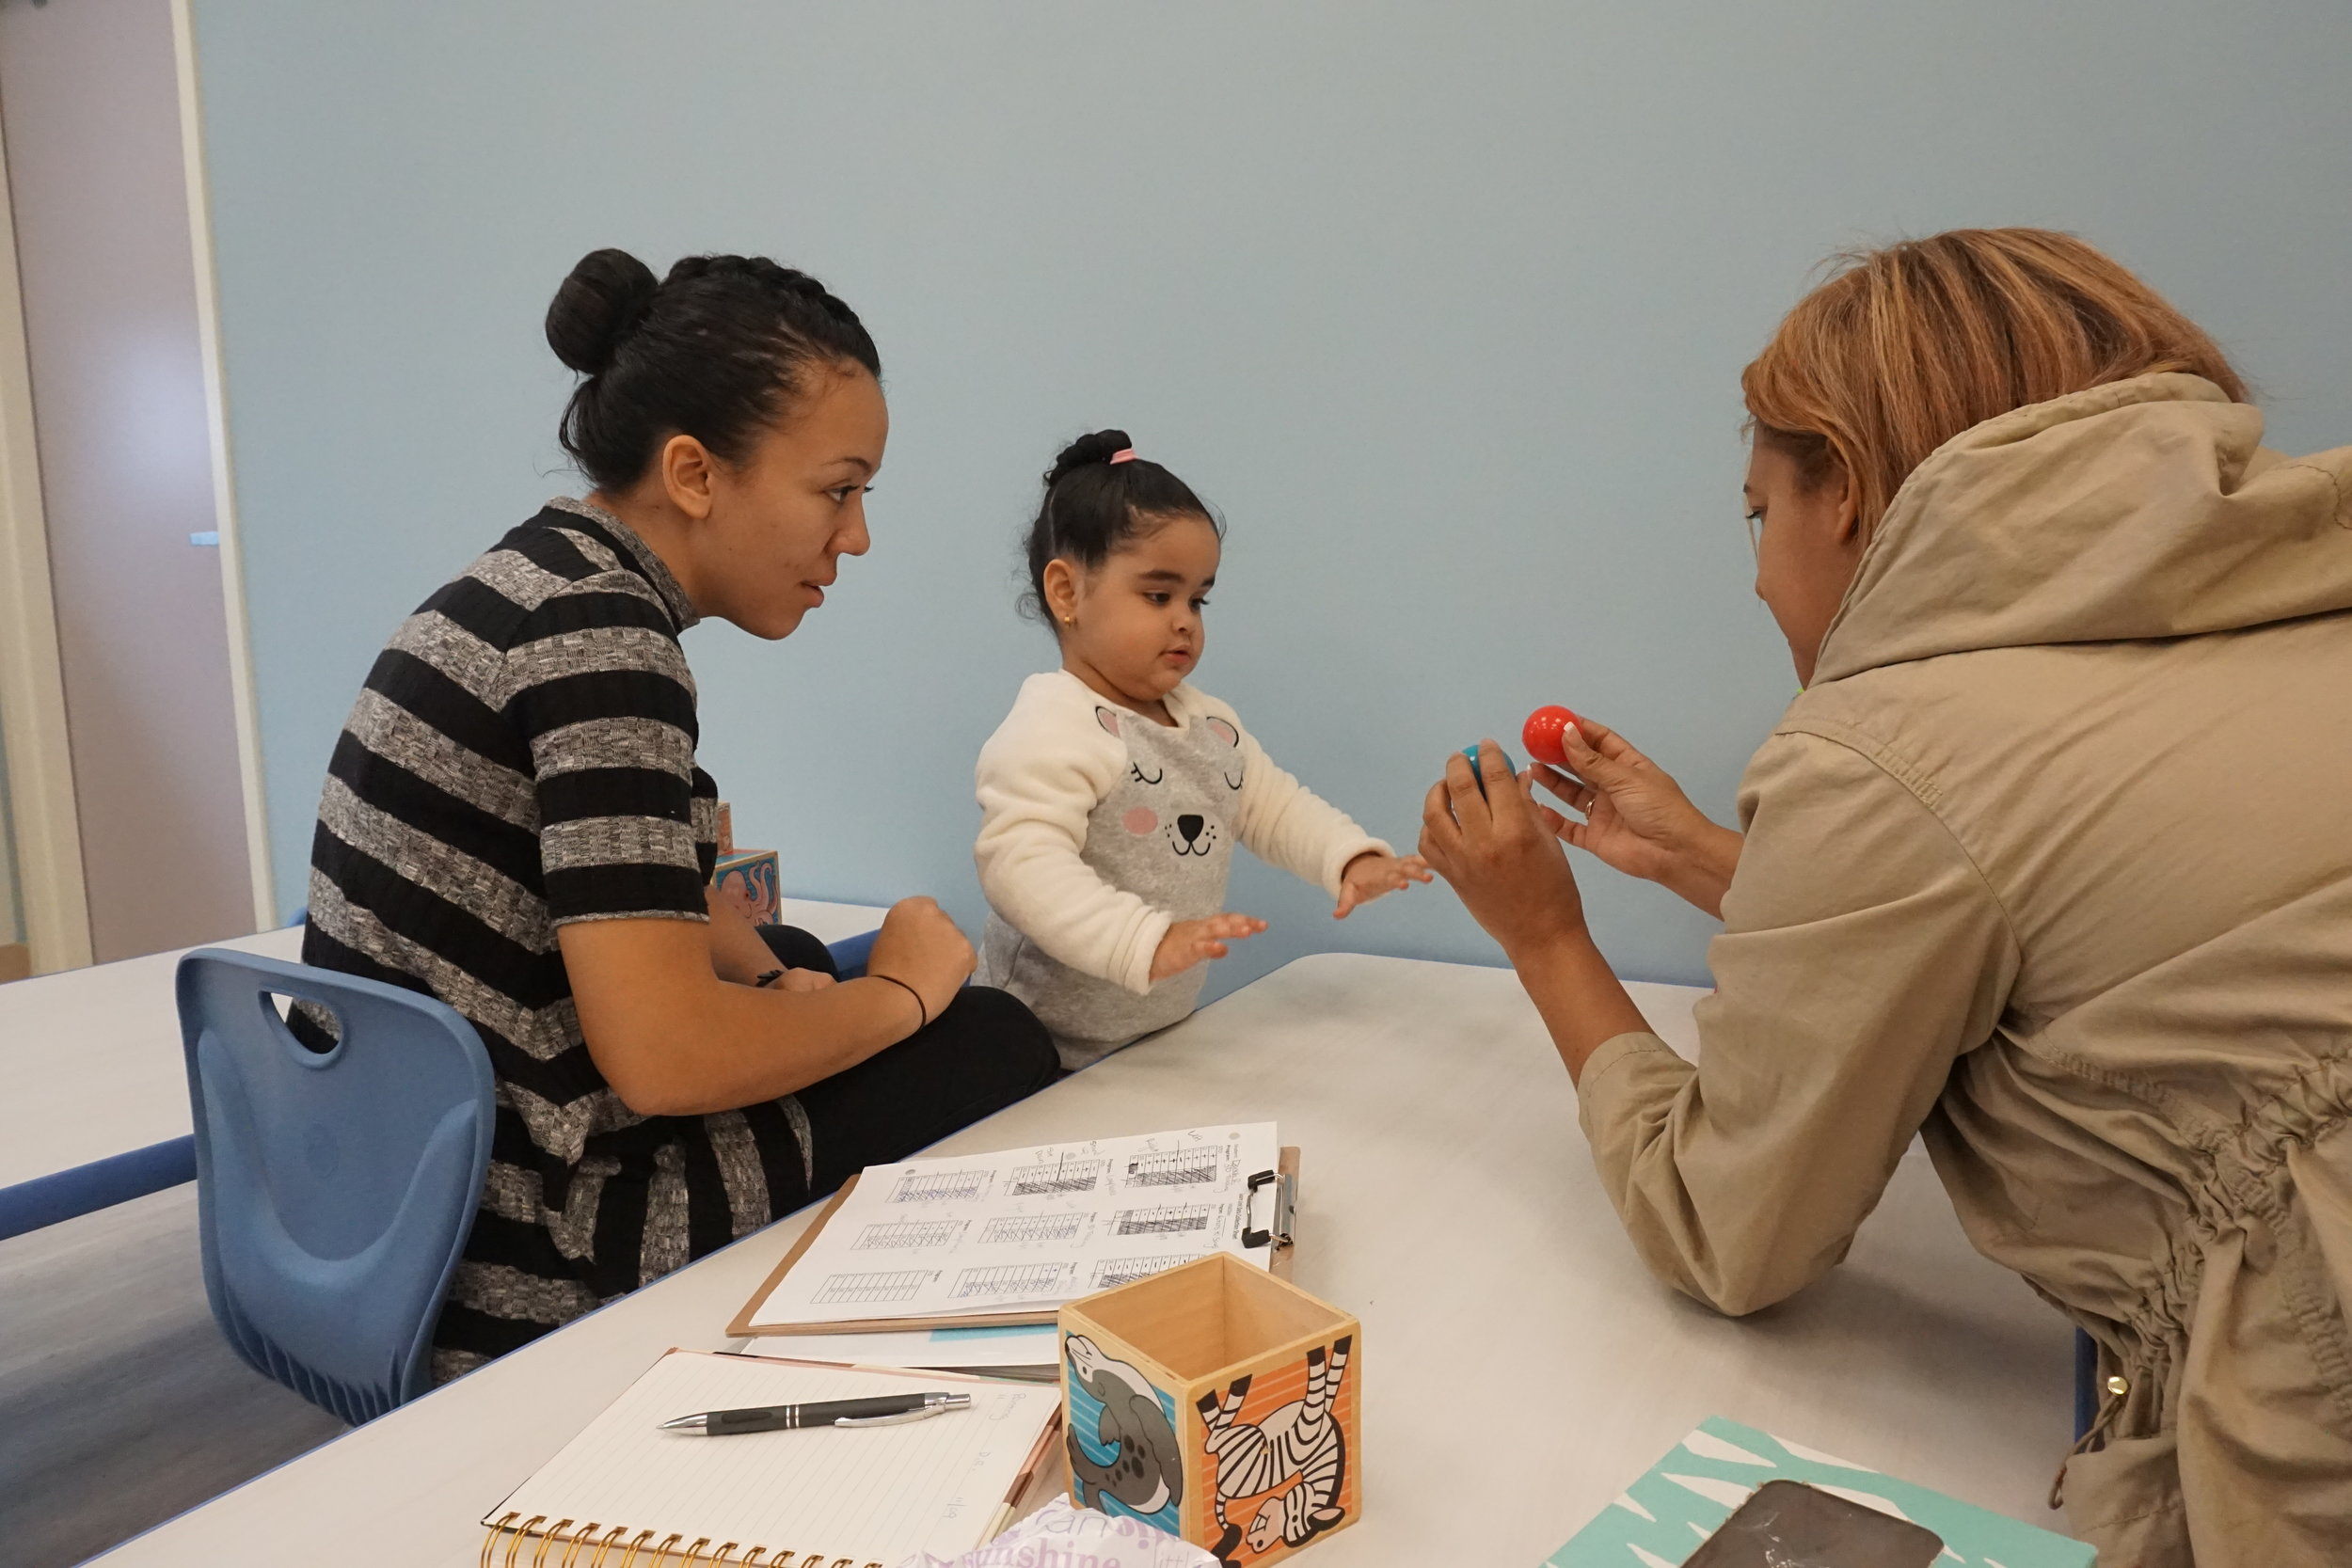 #MyMcCartonJourney - At McCarton Center Bronx, we recognize the incredible ability that exists within children who are on the spectrum, and strive to provide the treatment and education that each child needs to reach their full potential.Your gift can help her continue to unlock bright and promising futures for the babies at McCarton Center Bronx.